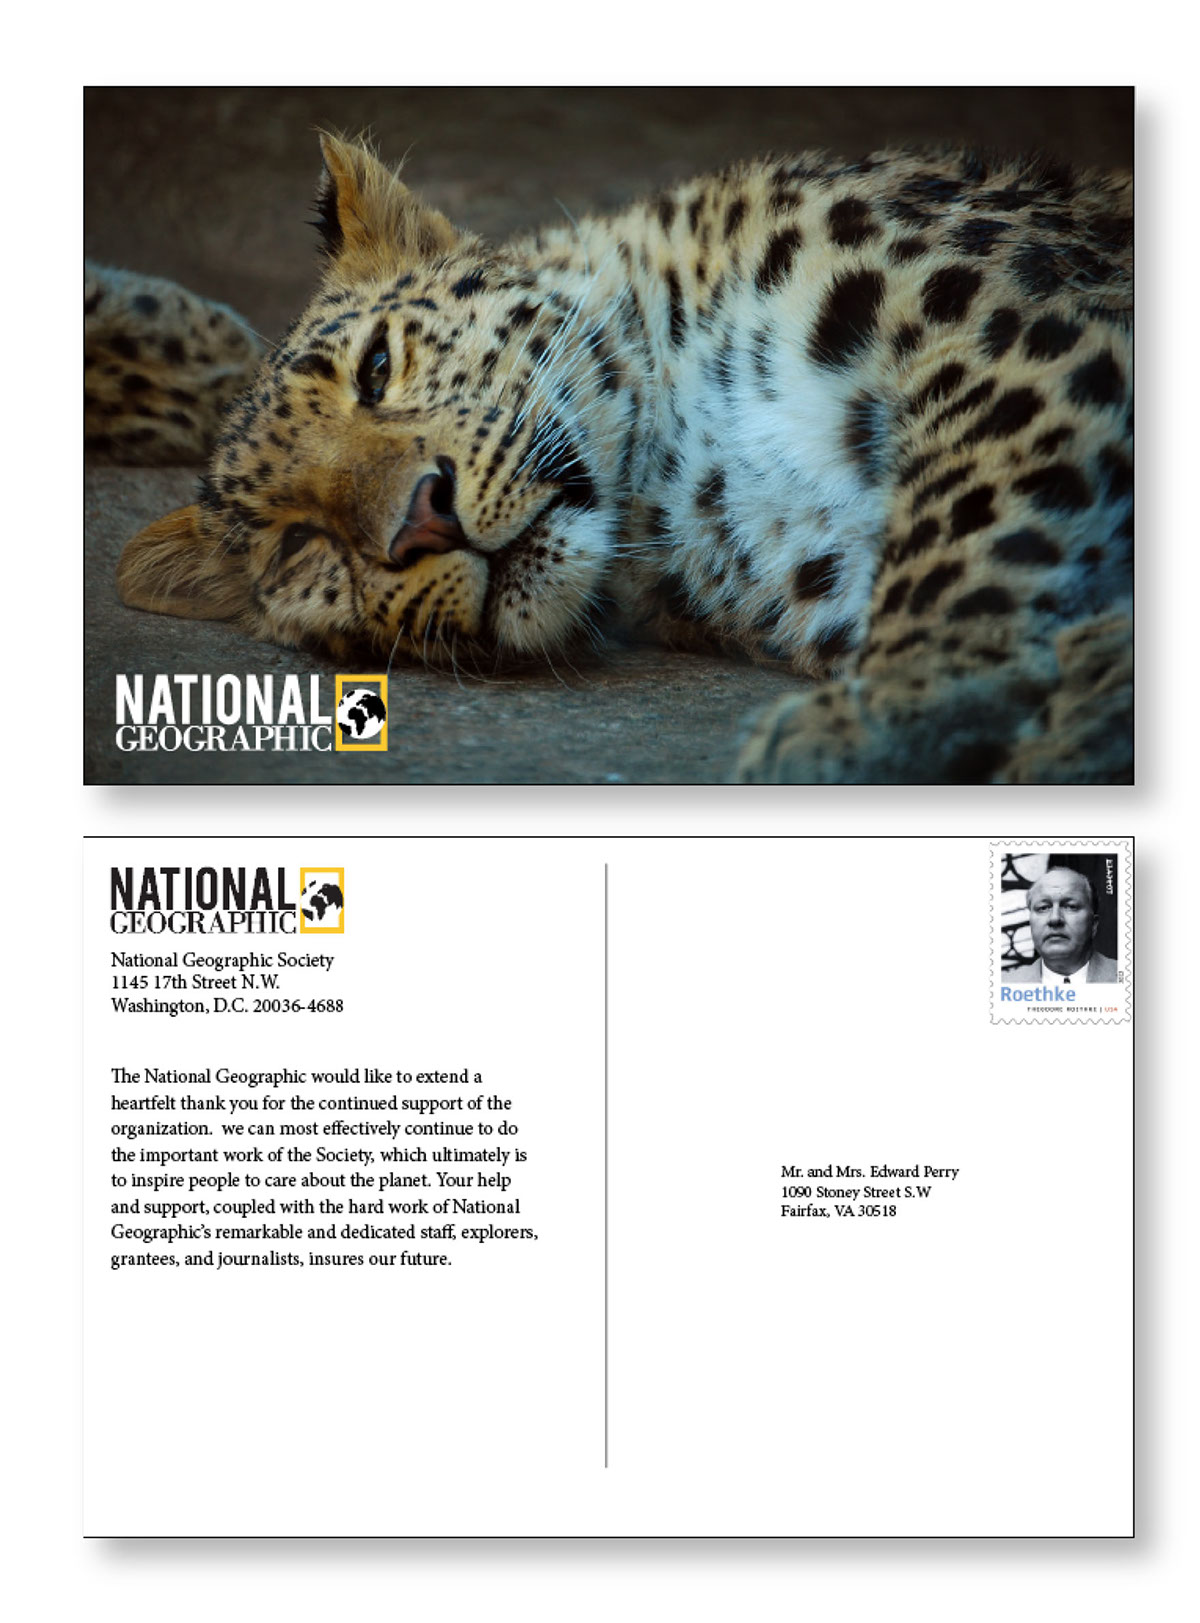 National Geographic Rebranding